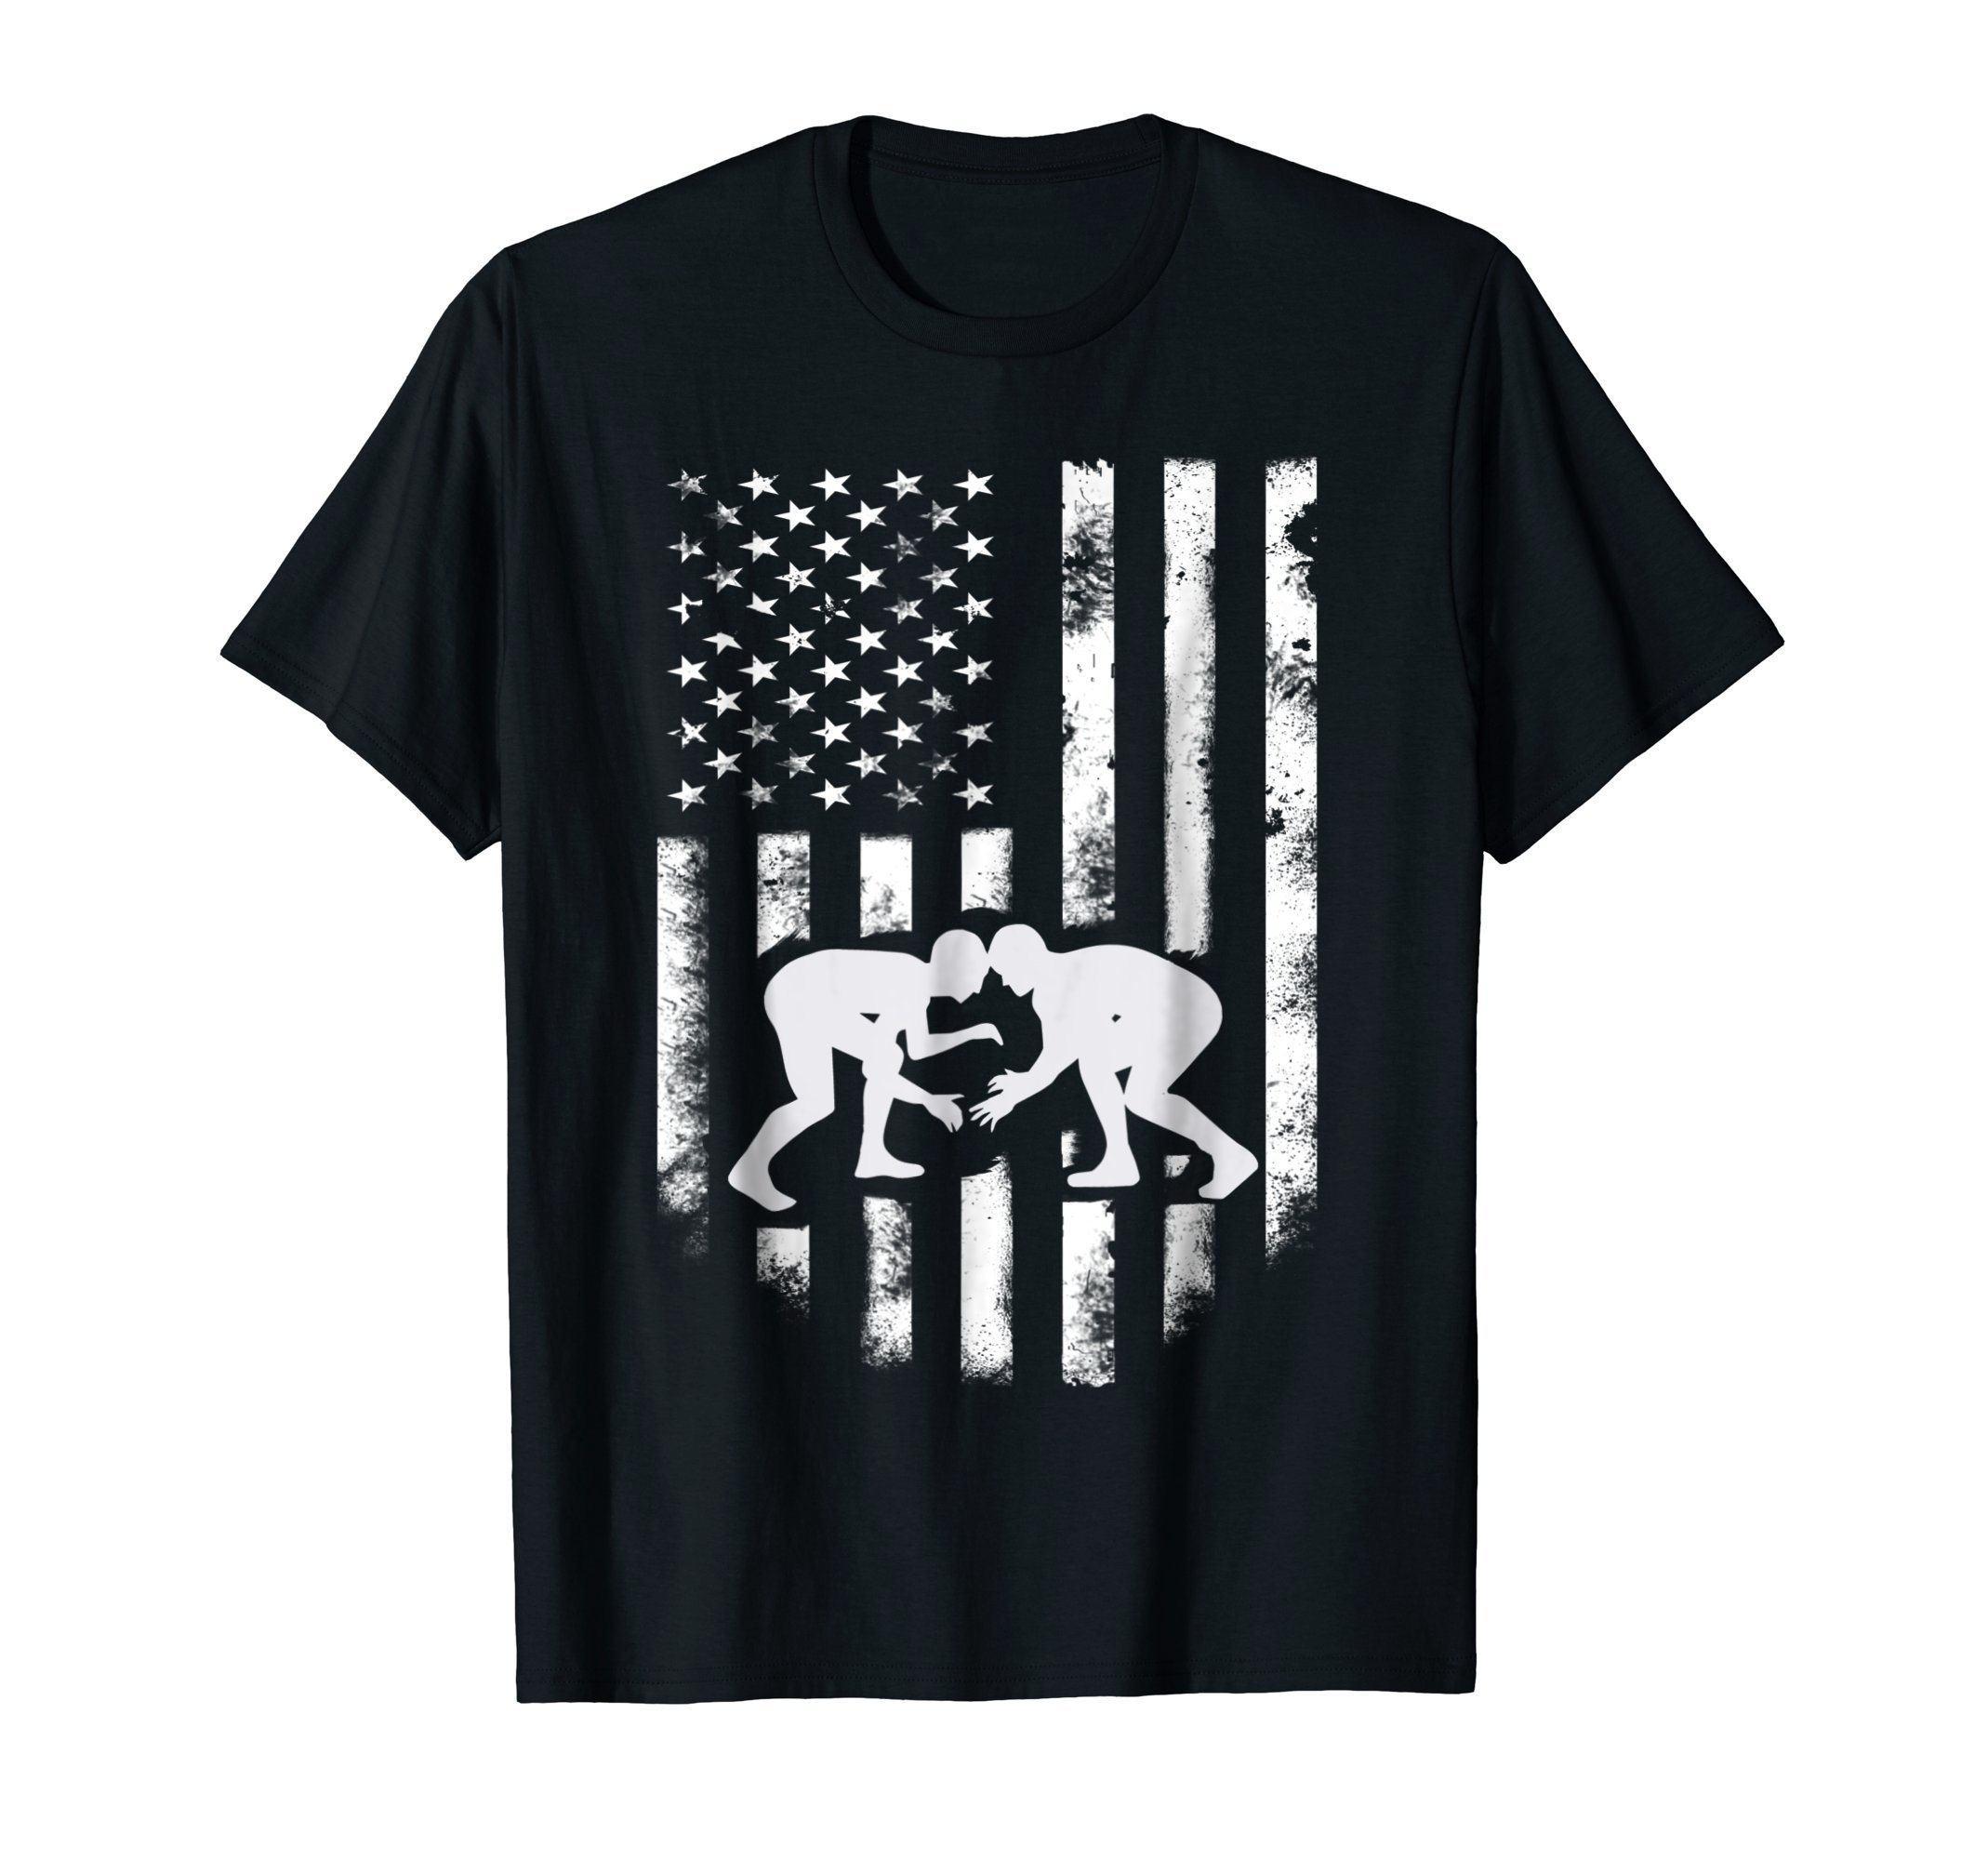 American Flag Wrestling T-Shirt Distressed Wrestle Gift Tee by Flag Wrestling & Wrestle Shirt Gifts